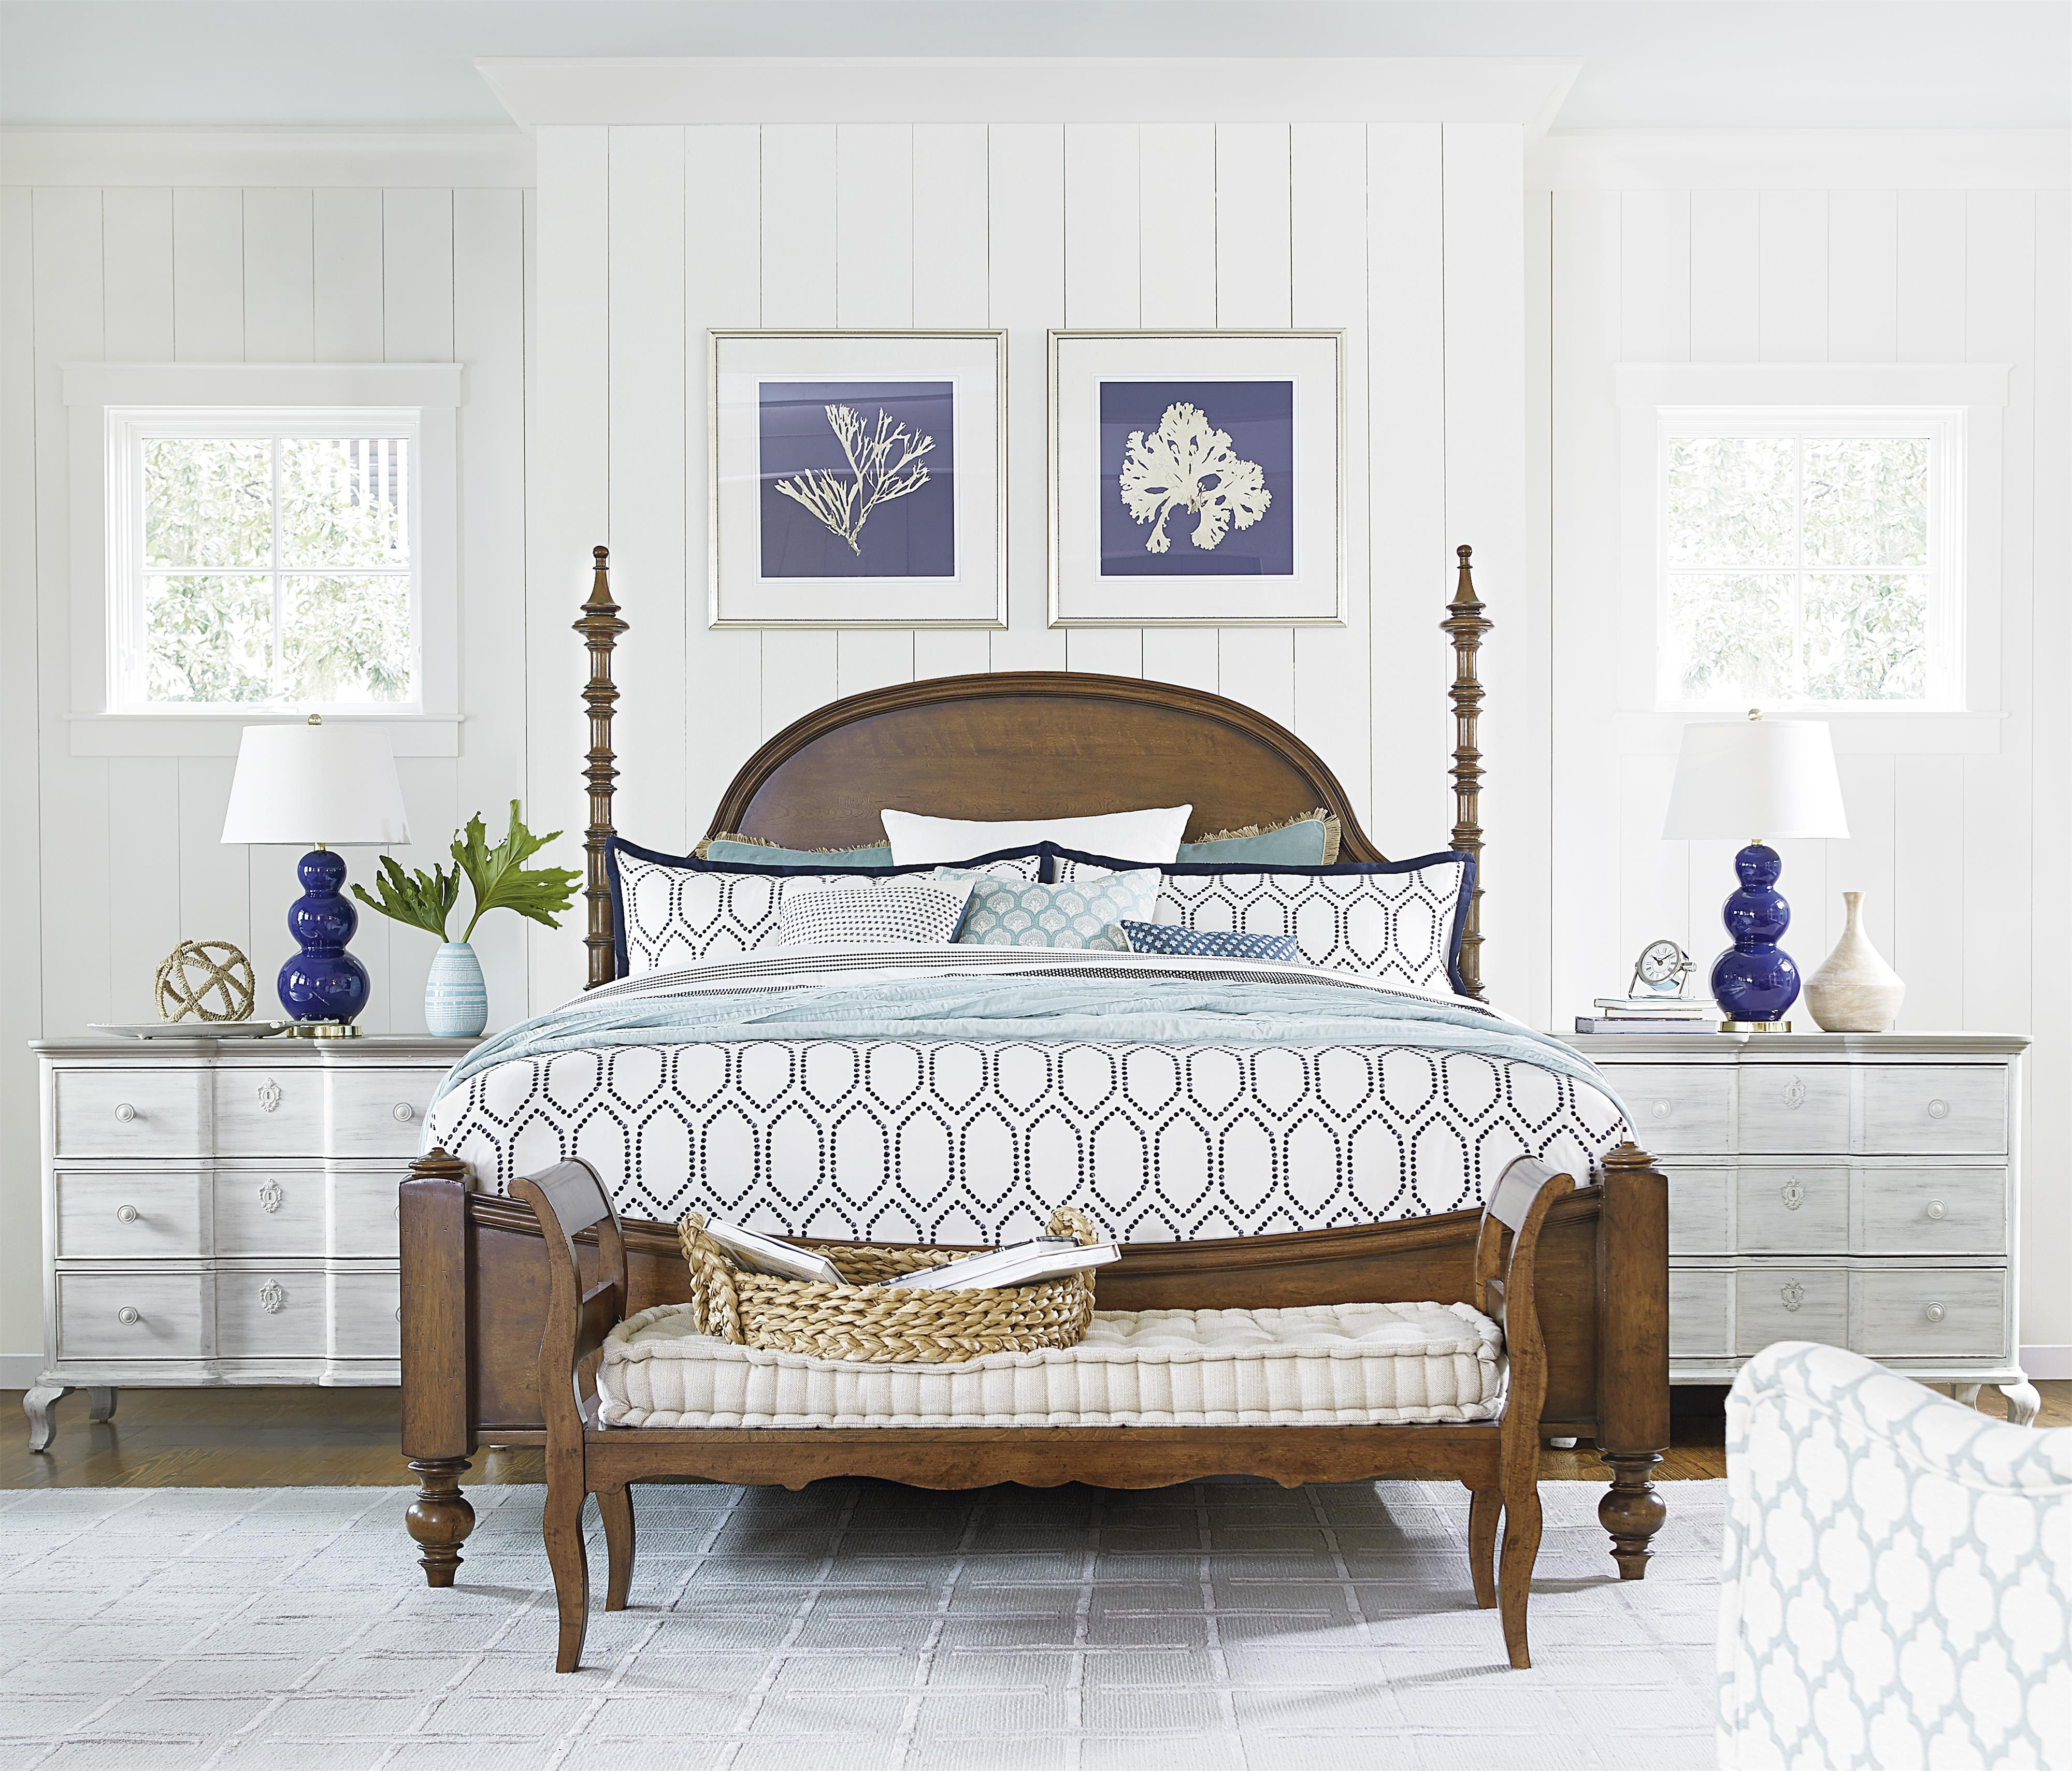 Paula Deen by Universal Dogwood California King Bedroom Group - Item Number: 596 CK Bedroom Group 3